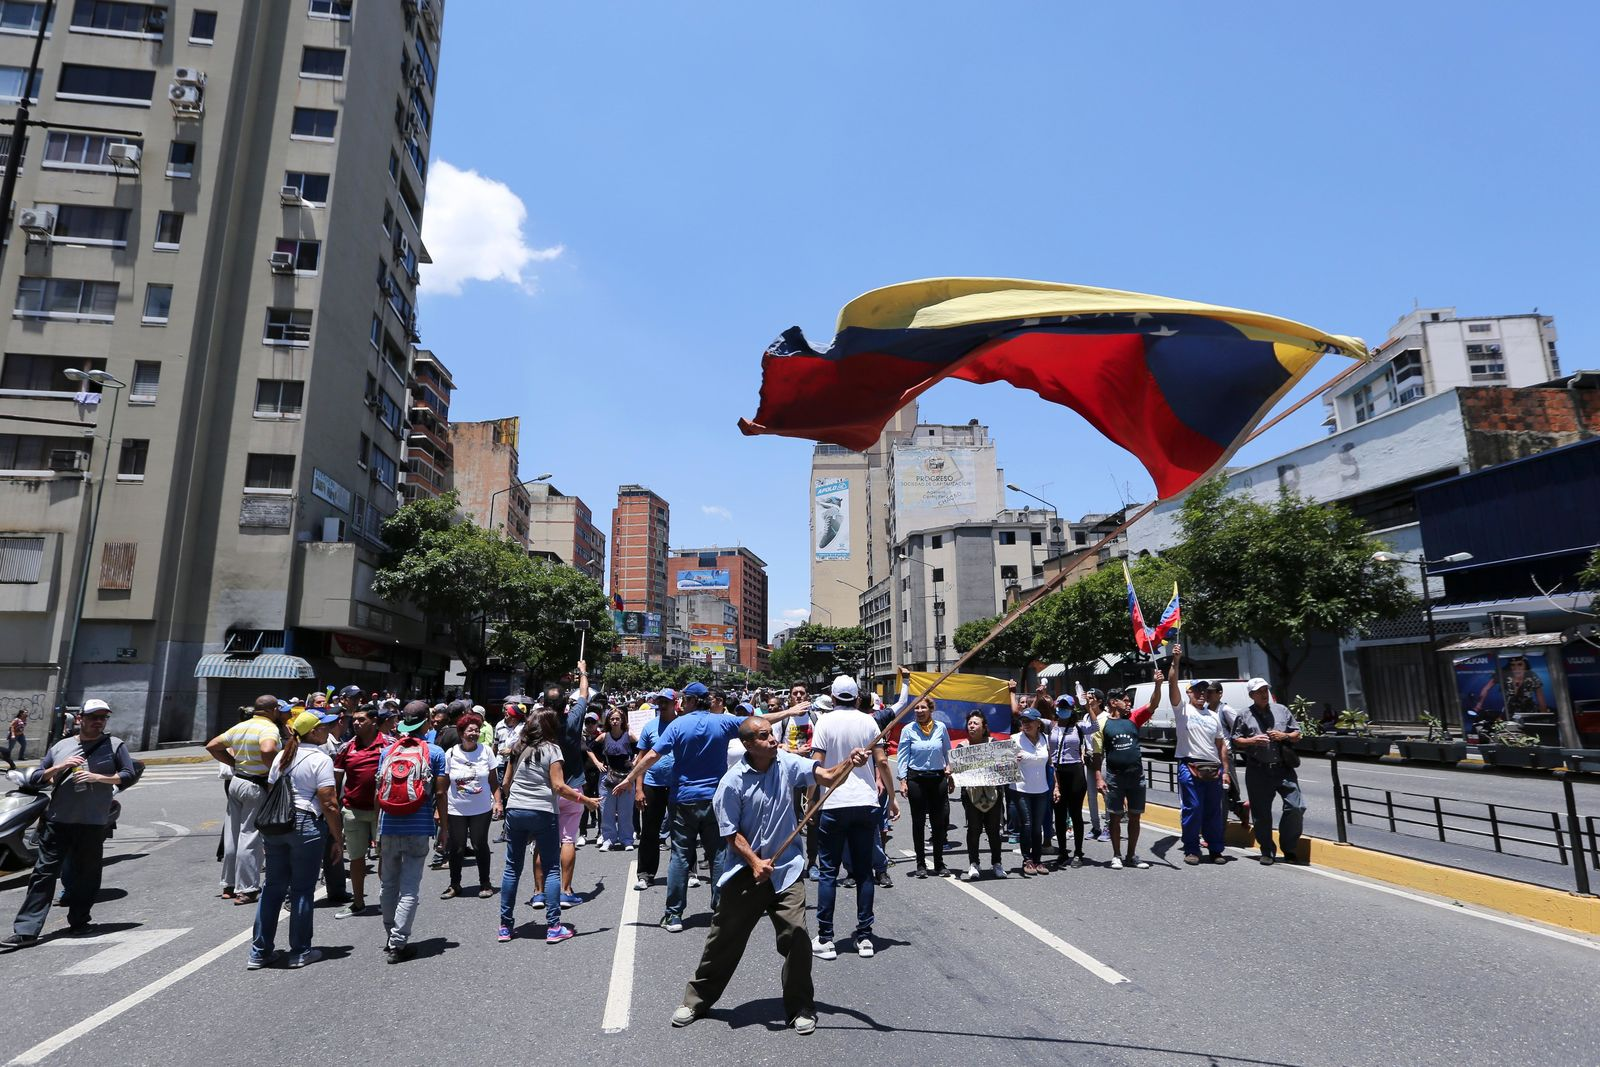 Supporters of opposition leader and self-proclaimed interim president Juan Guaido march to protest outages that left most of the country scrambling for days in the dark in Caracas, Venezuela, Saturday, April 6, 2019. (AP Photo/Fernando Llano)